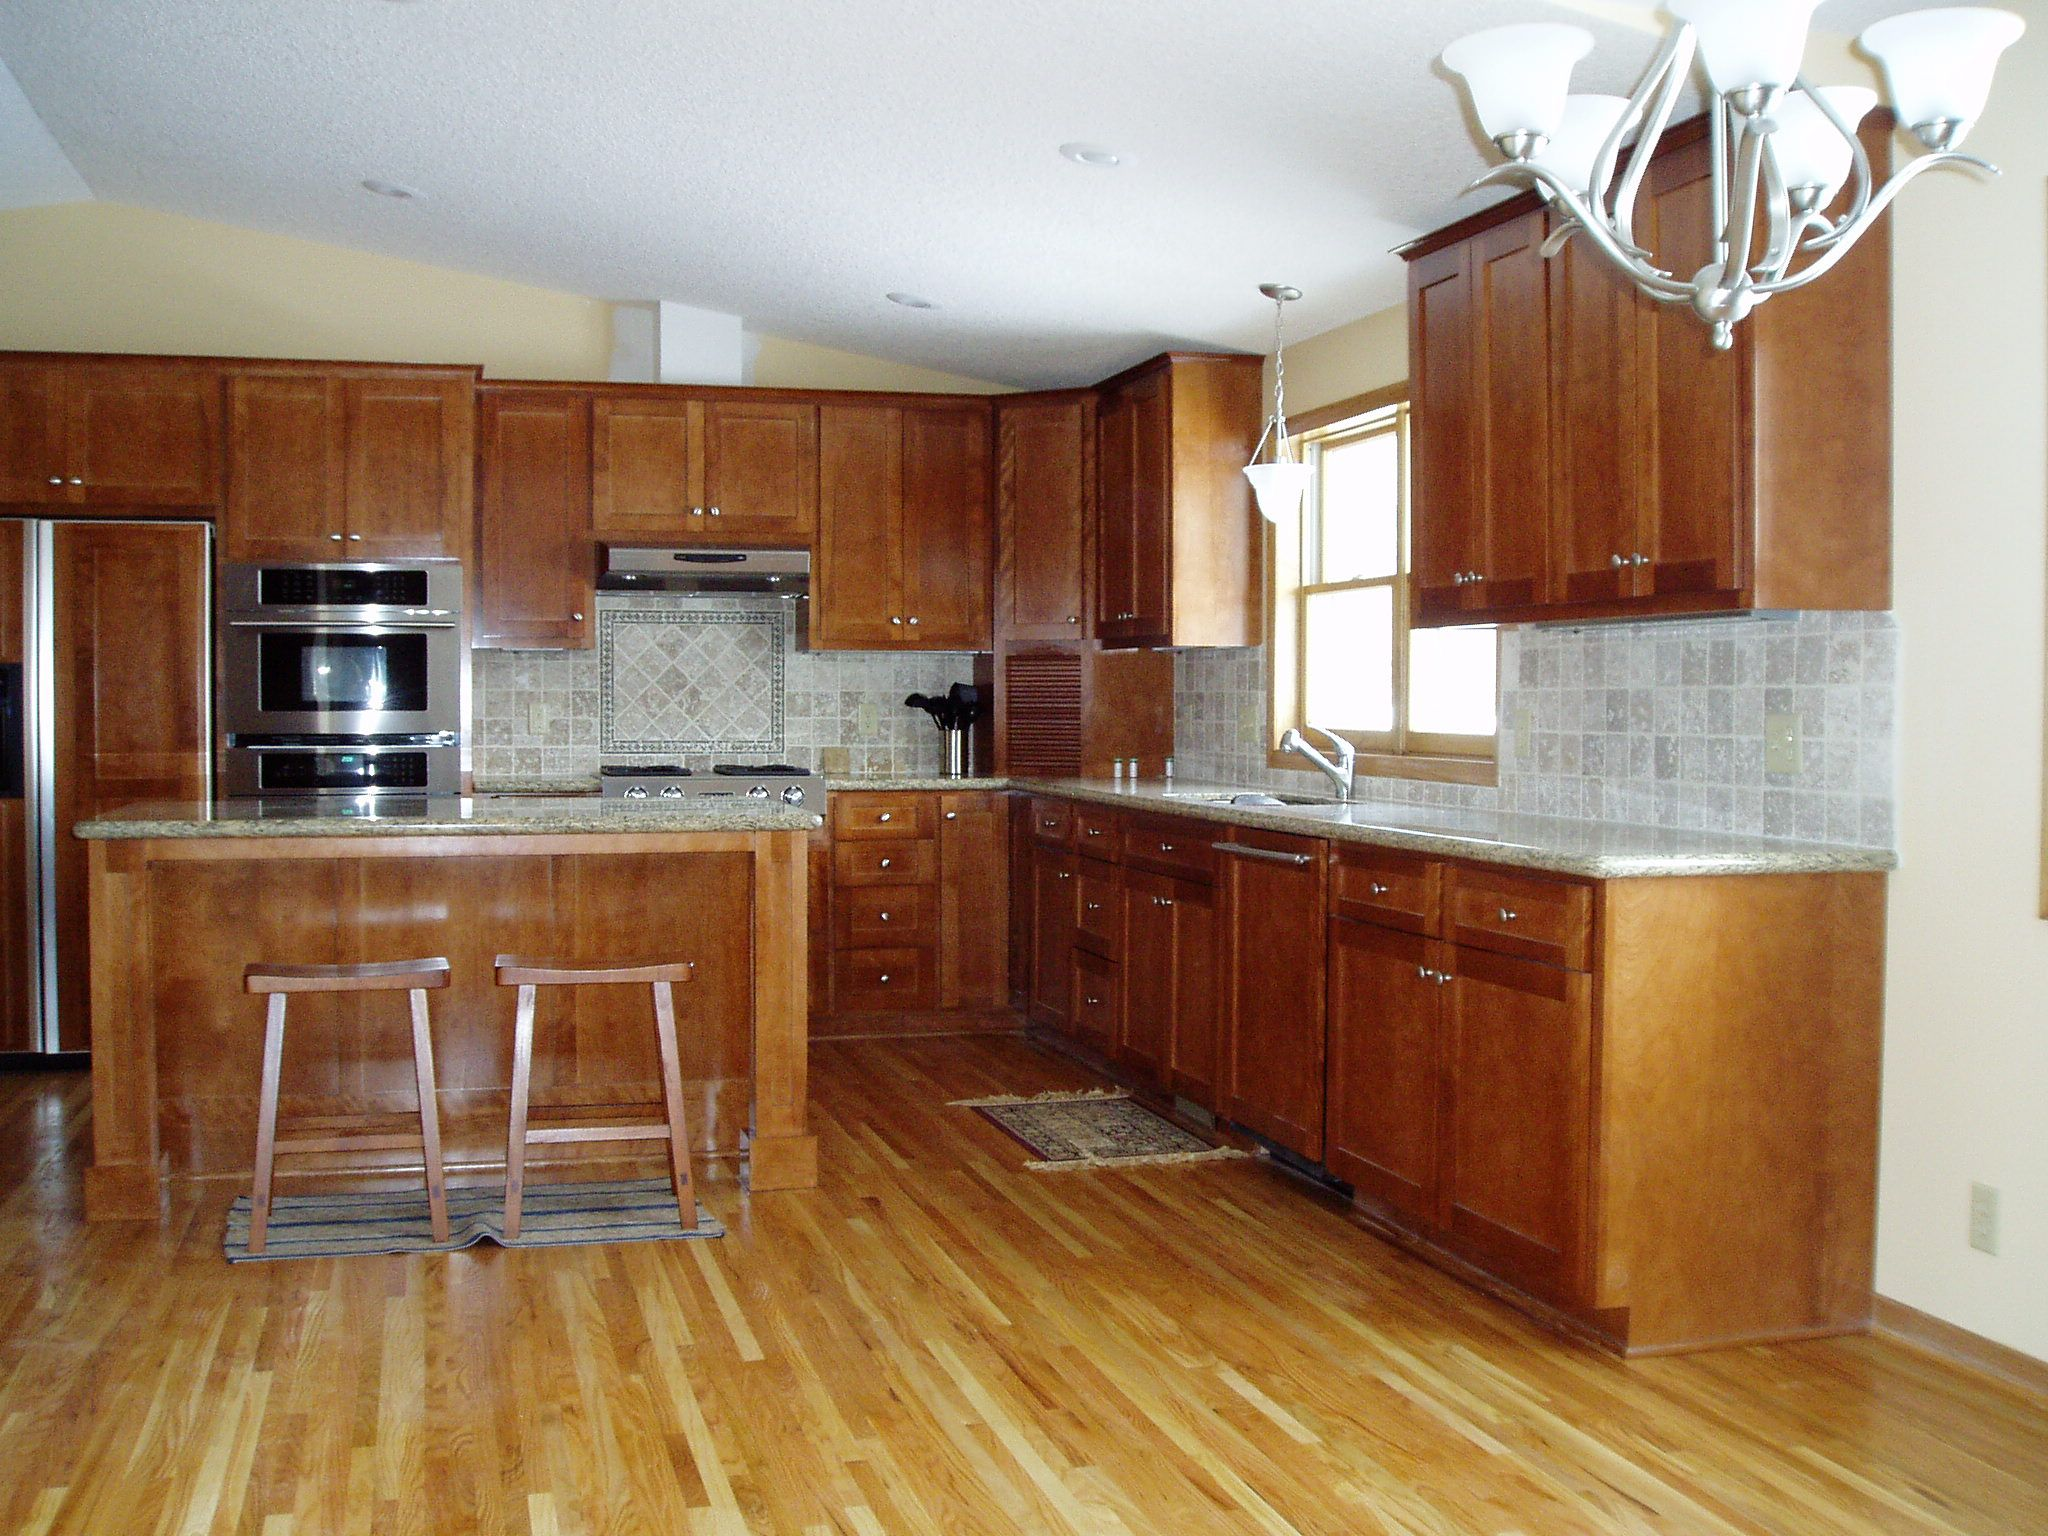 How To Coordinate Kitchen Countertops And Flooring And Cabinets